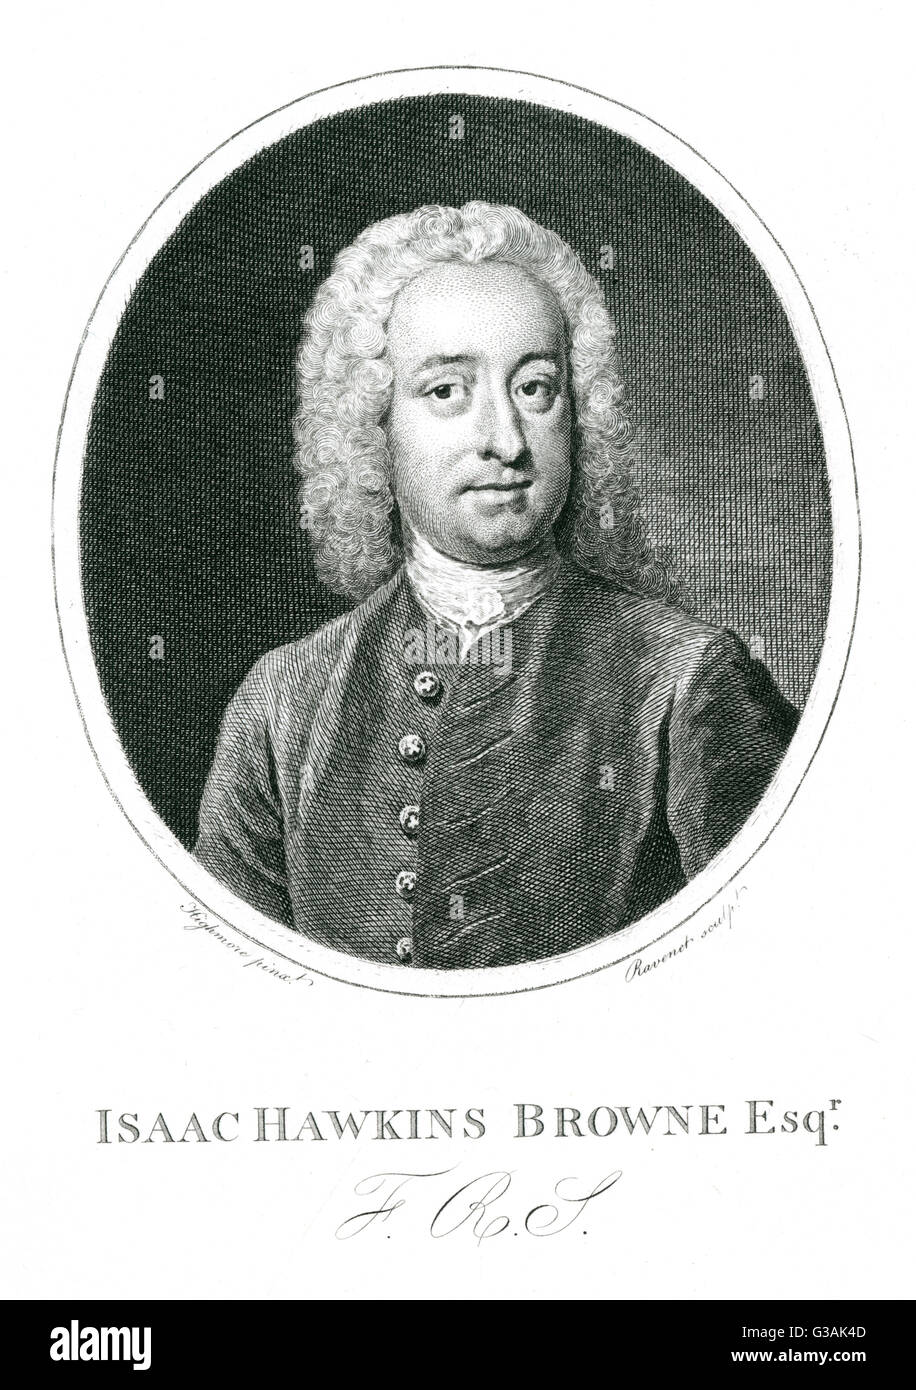 Isaac Hawkins Browne (1705-1760) - barrister, poet - author of some imitations of works by Swift and Pope.     Date: - Stock Image